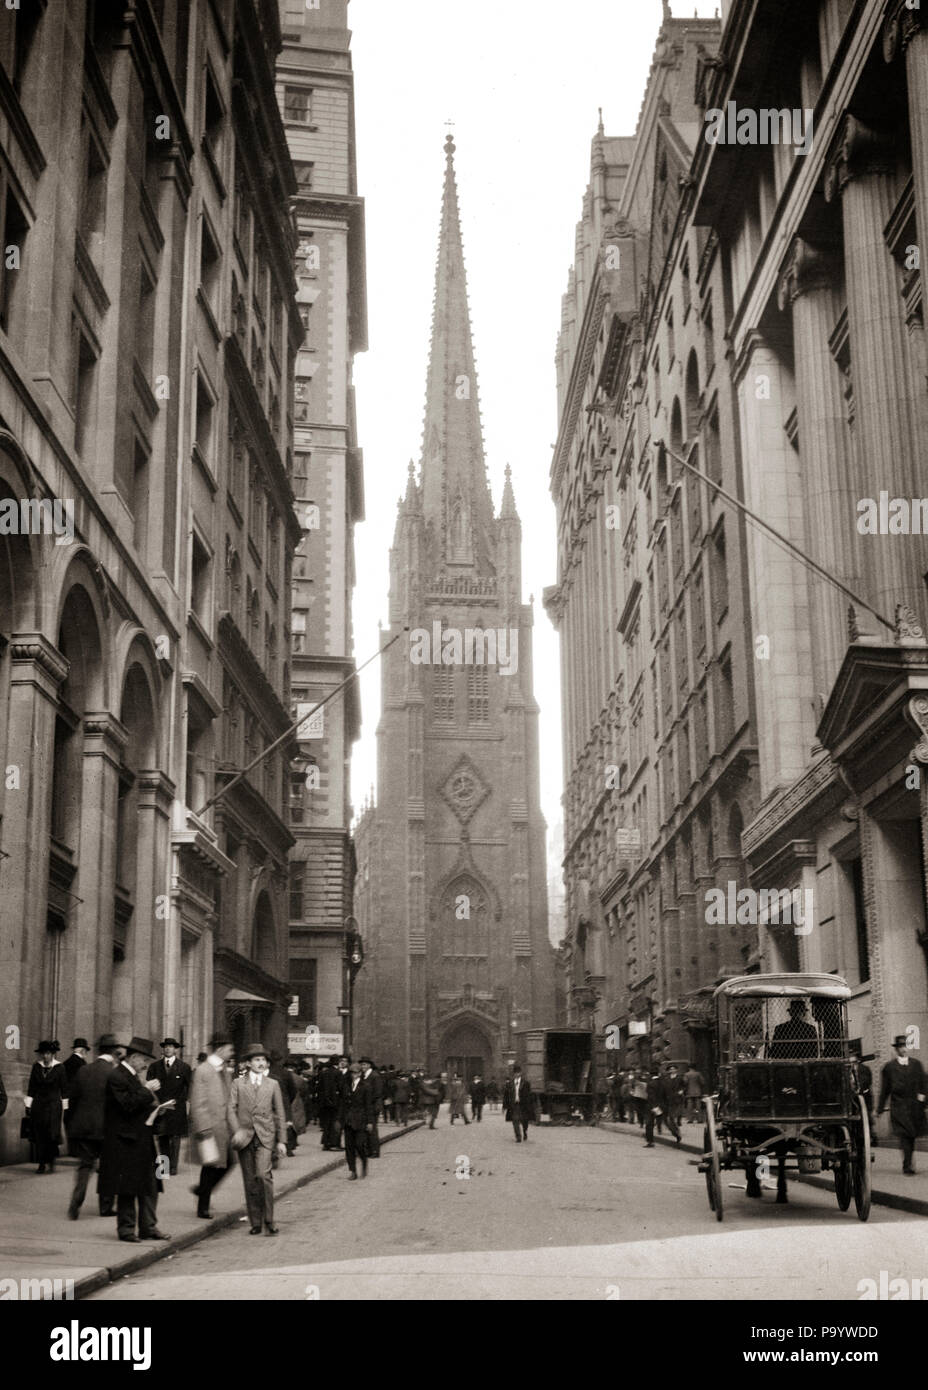 1910s 1915 TRINITY CHURCH ANONYMOUS BUSINESSMEN PEDESTRIANS HORSE AND CARRIAGE WALL STREET NEW YORK CITY USA - q74173 CPC001 HARS DREAMS MAMMALS STRATEGY CUSTOMER SERVICE TURN OF THE 20TH CENTURY EXCITEMENT PROGRESS OPPORTUNITY NYC OCCUPATIONS NEW YORK CITIES NEW YORK CITY ANONYMOUS GROWTH HORSE AND CARRIAGE MAMMAL WALL STREET 1915 BLACK AND WHITE CAUCASIAN ETHNICITY OLD FASHIONED - Stock Image